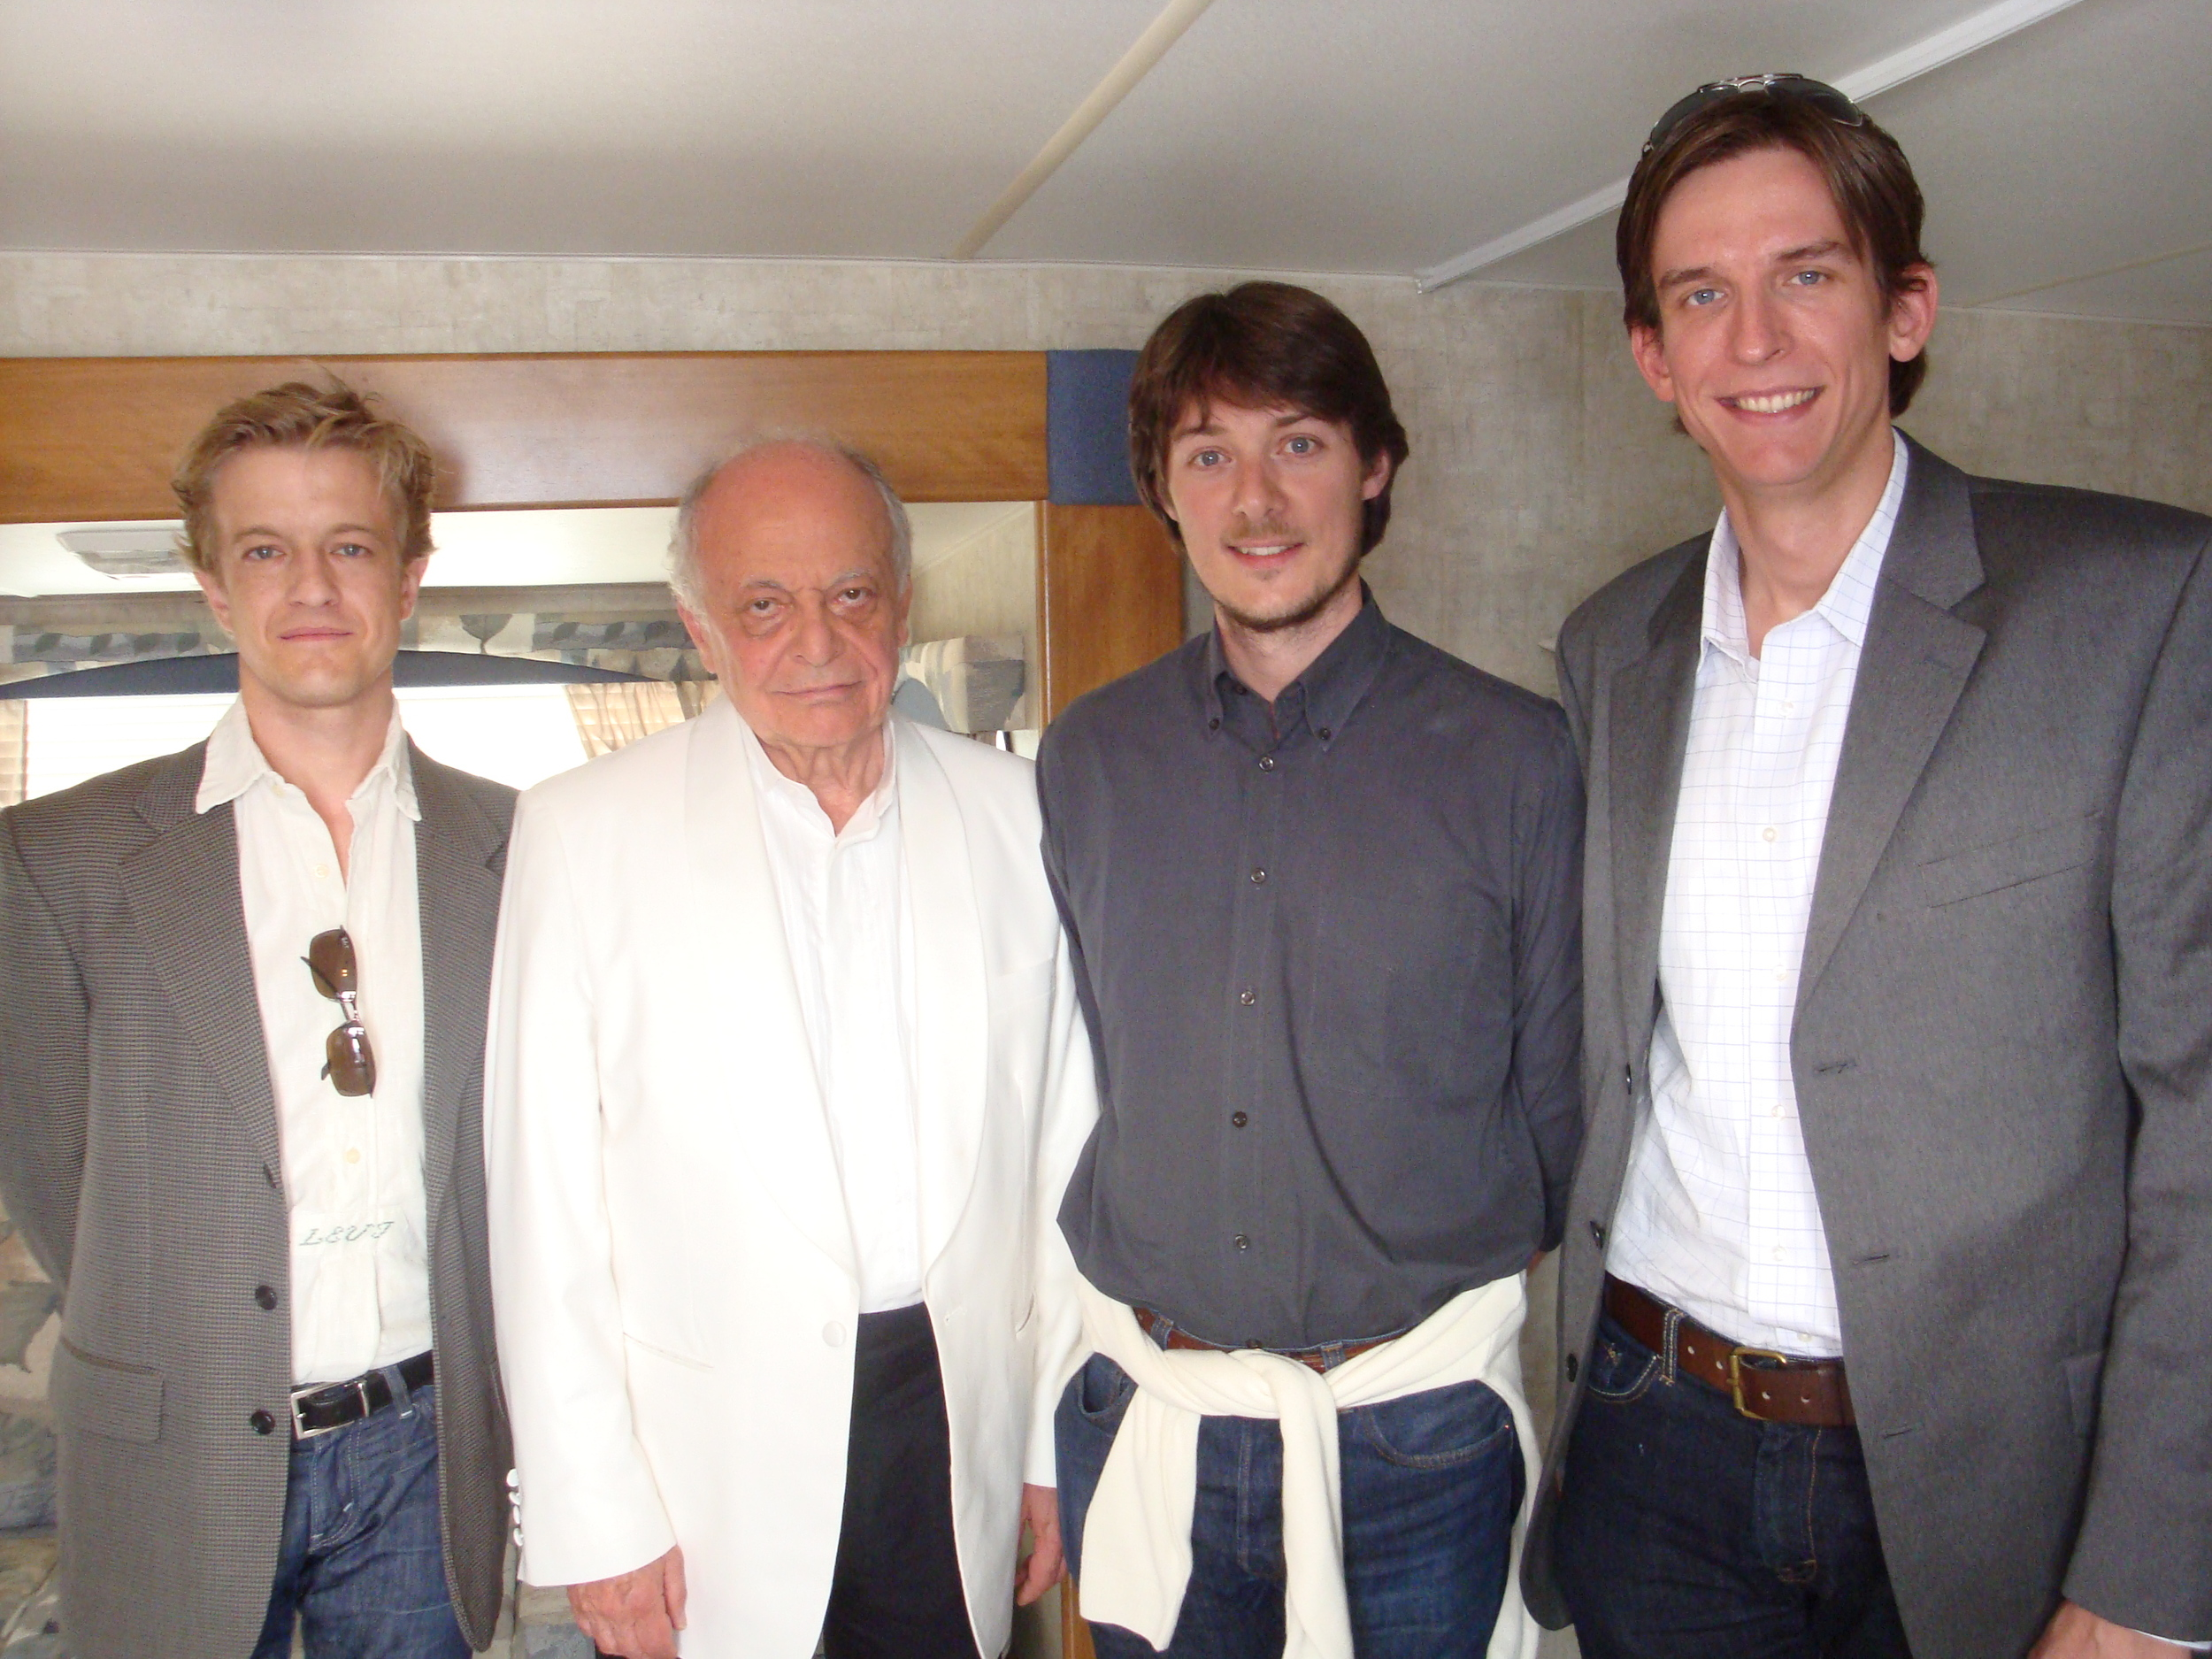 With Maestro Lorin Maazel and good friends Maestri Matthieu Mantanus and Blake Richardson at the Castleton Festival.